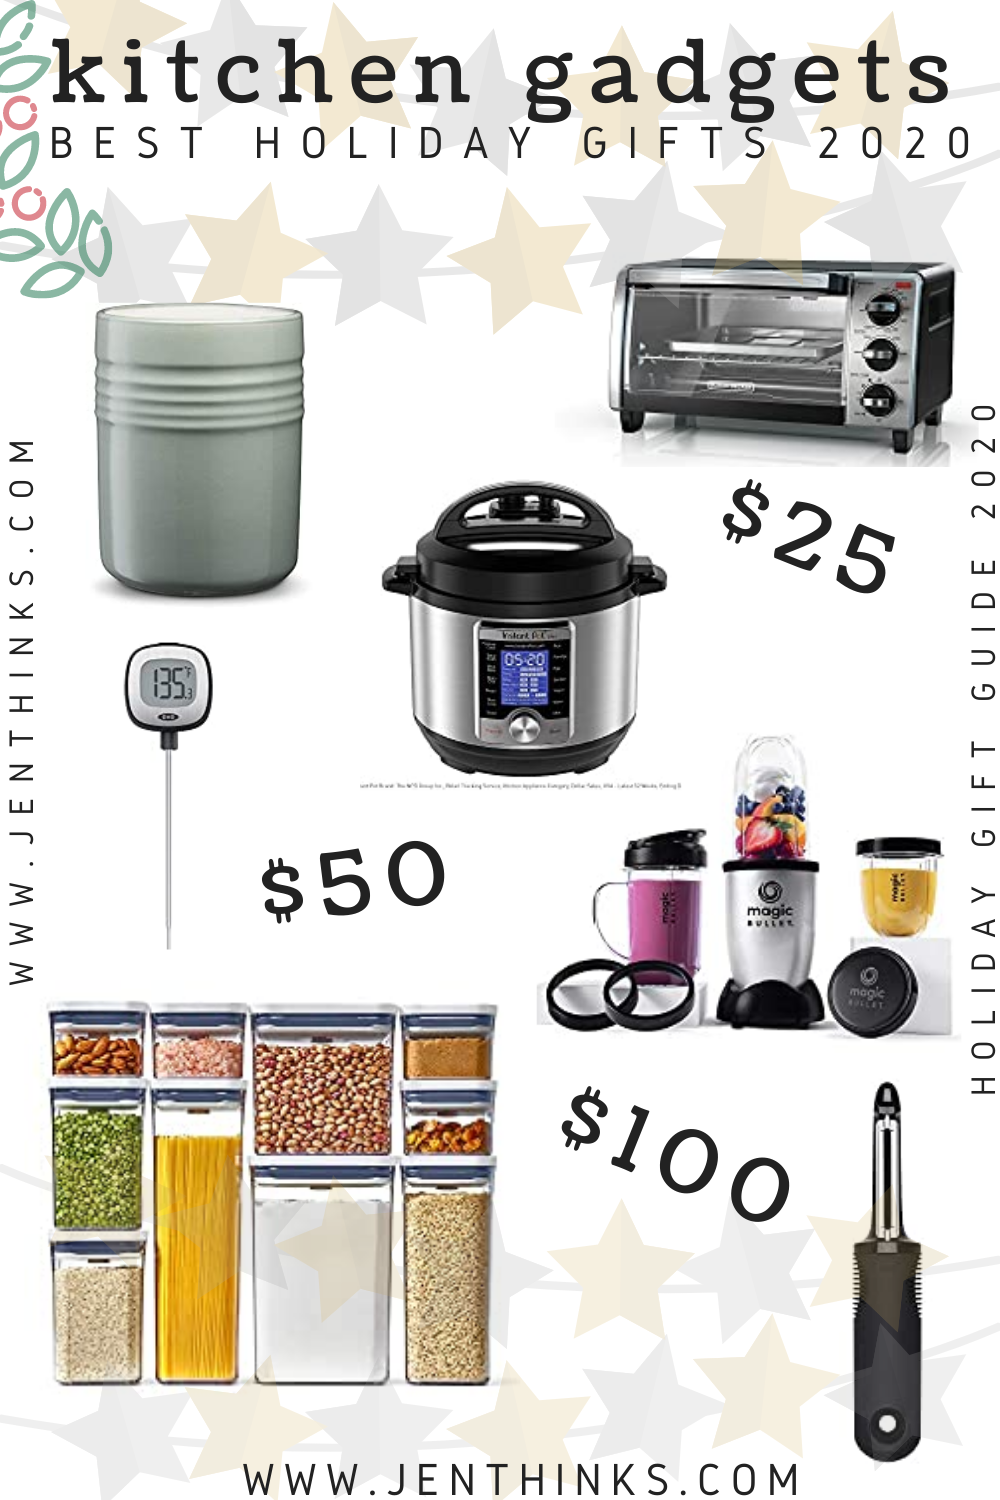 Best Kitchen Gadgets Holiday Gifts 2020